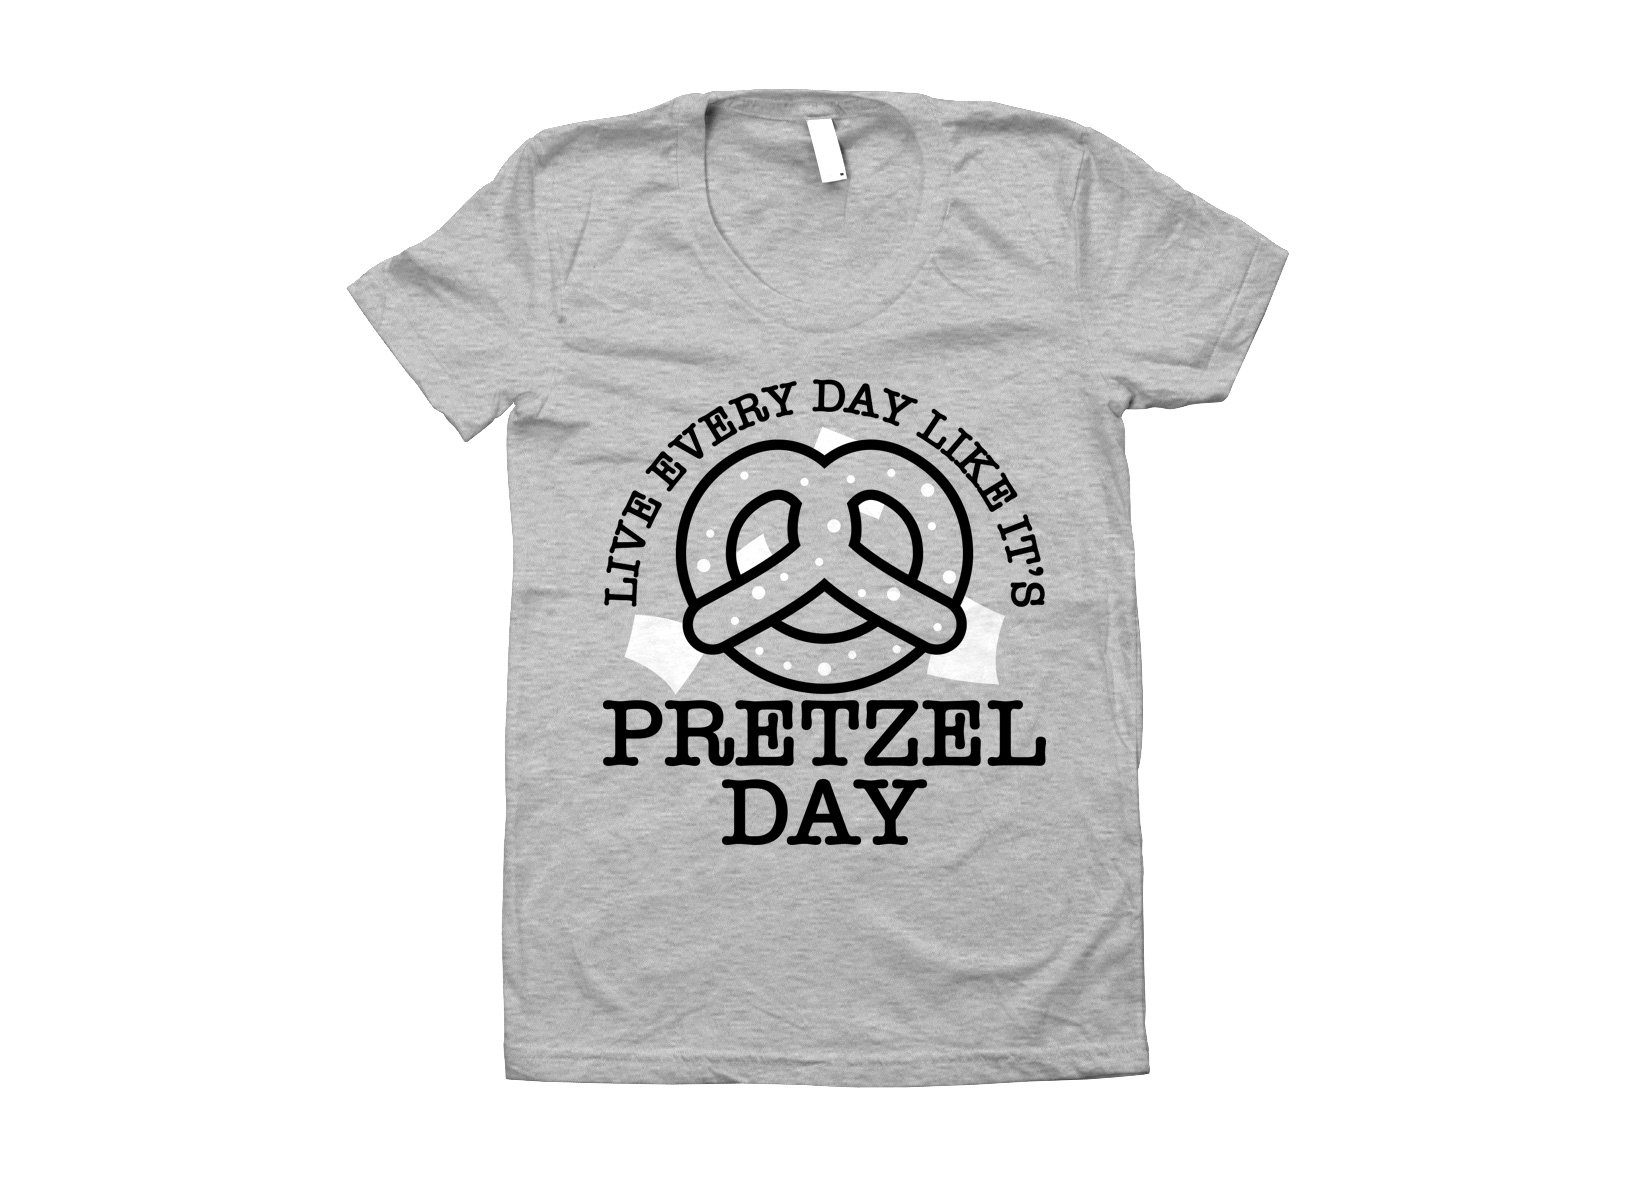 Live Every Day Like It's Pretzel Day on Juniors T-Shirt